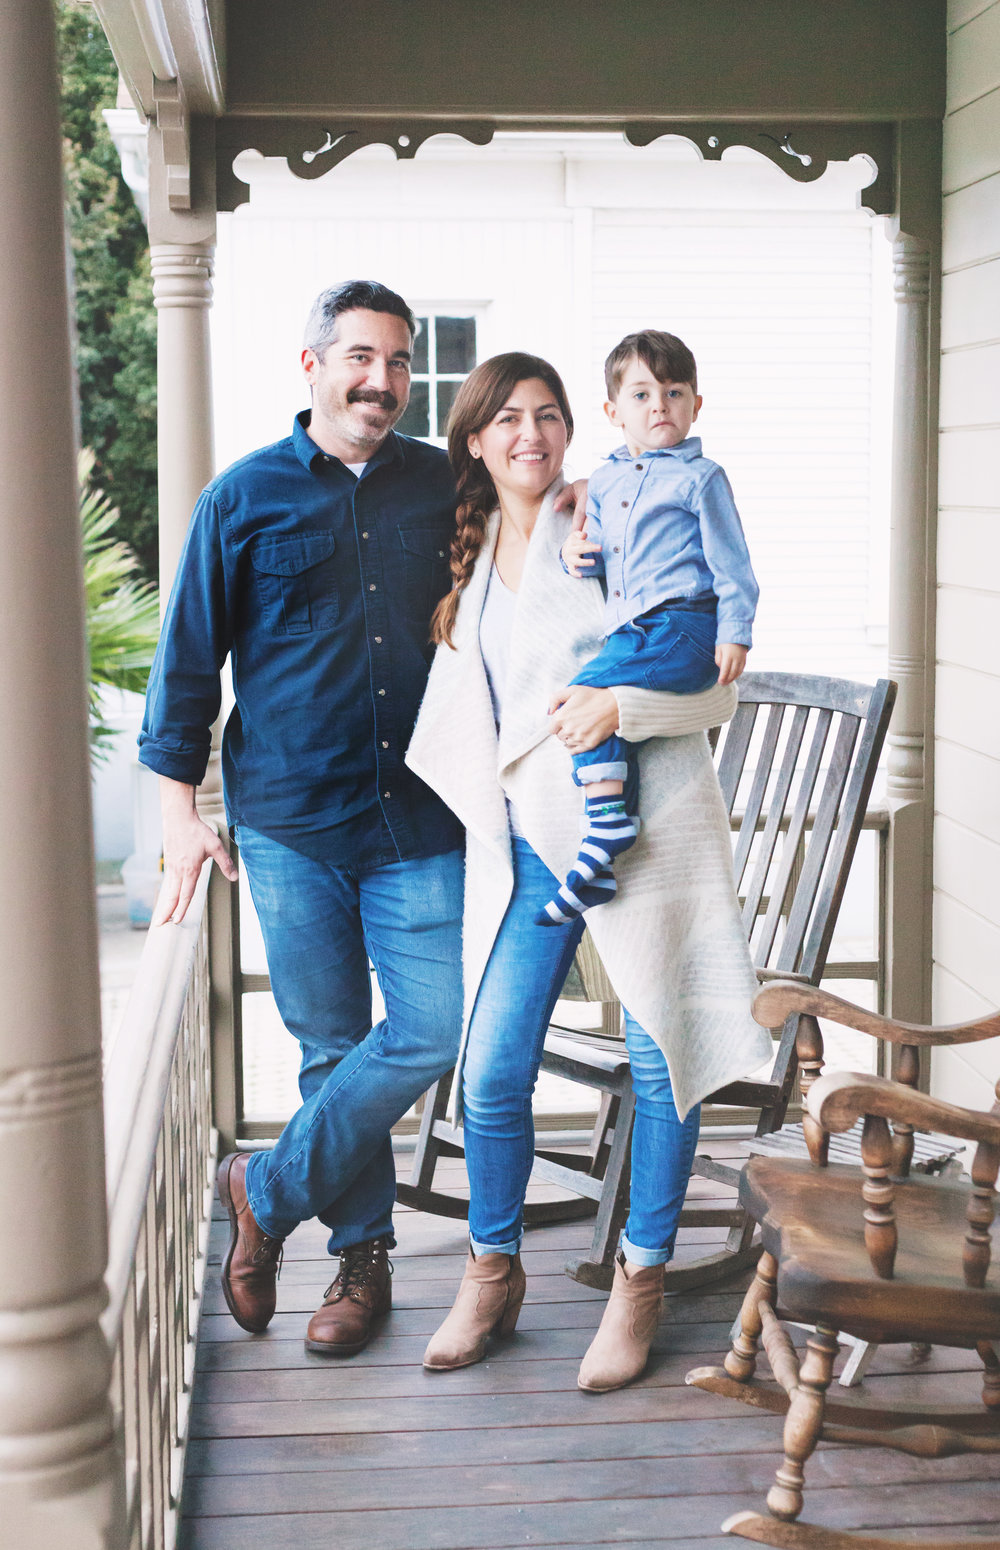 MEET THE HERD    Larder Meat Co. Owners Jensen and Grace Lorenzen with their 3-year-old son, August. The San Luis Obispo couple is on a mission to bring local meats—chicken, beef, and pork—to your doorstep every month with two sizes of Larder Meat Co. boxes to choose from.    PHOTO COURTESY OF JEN OLSON